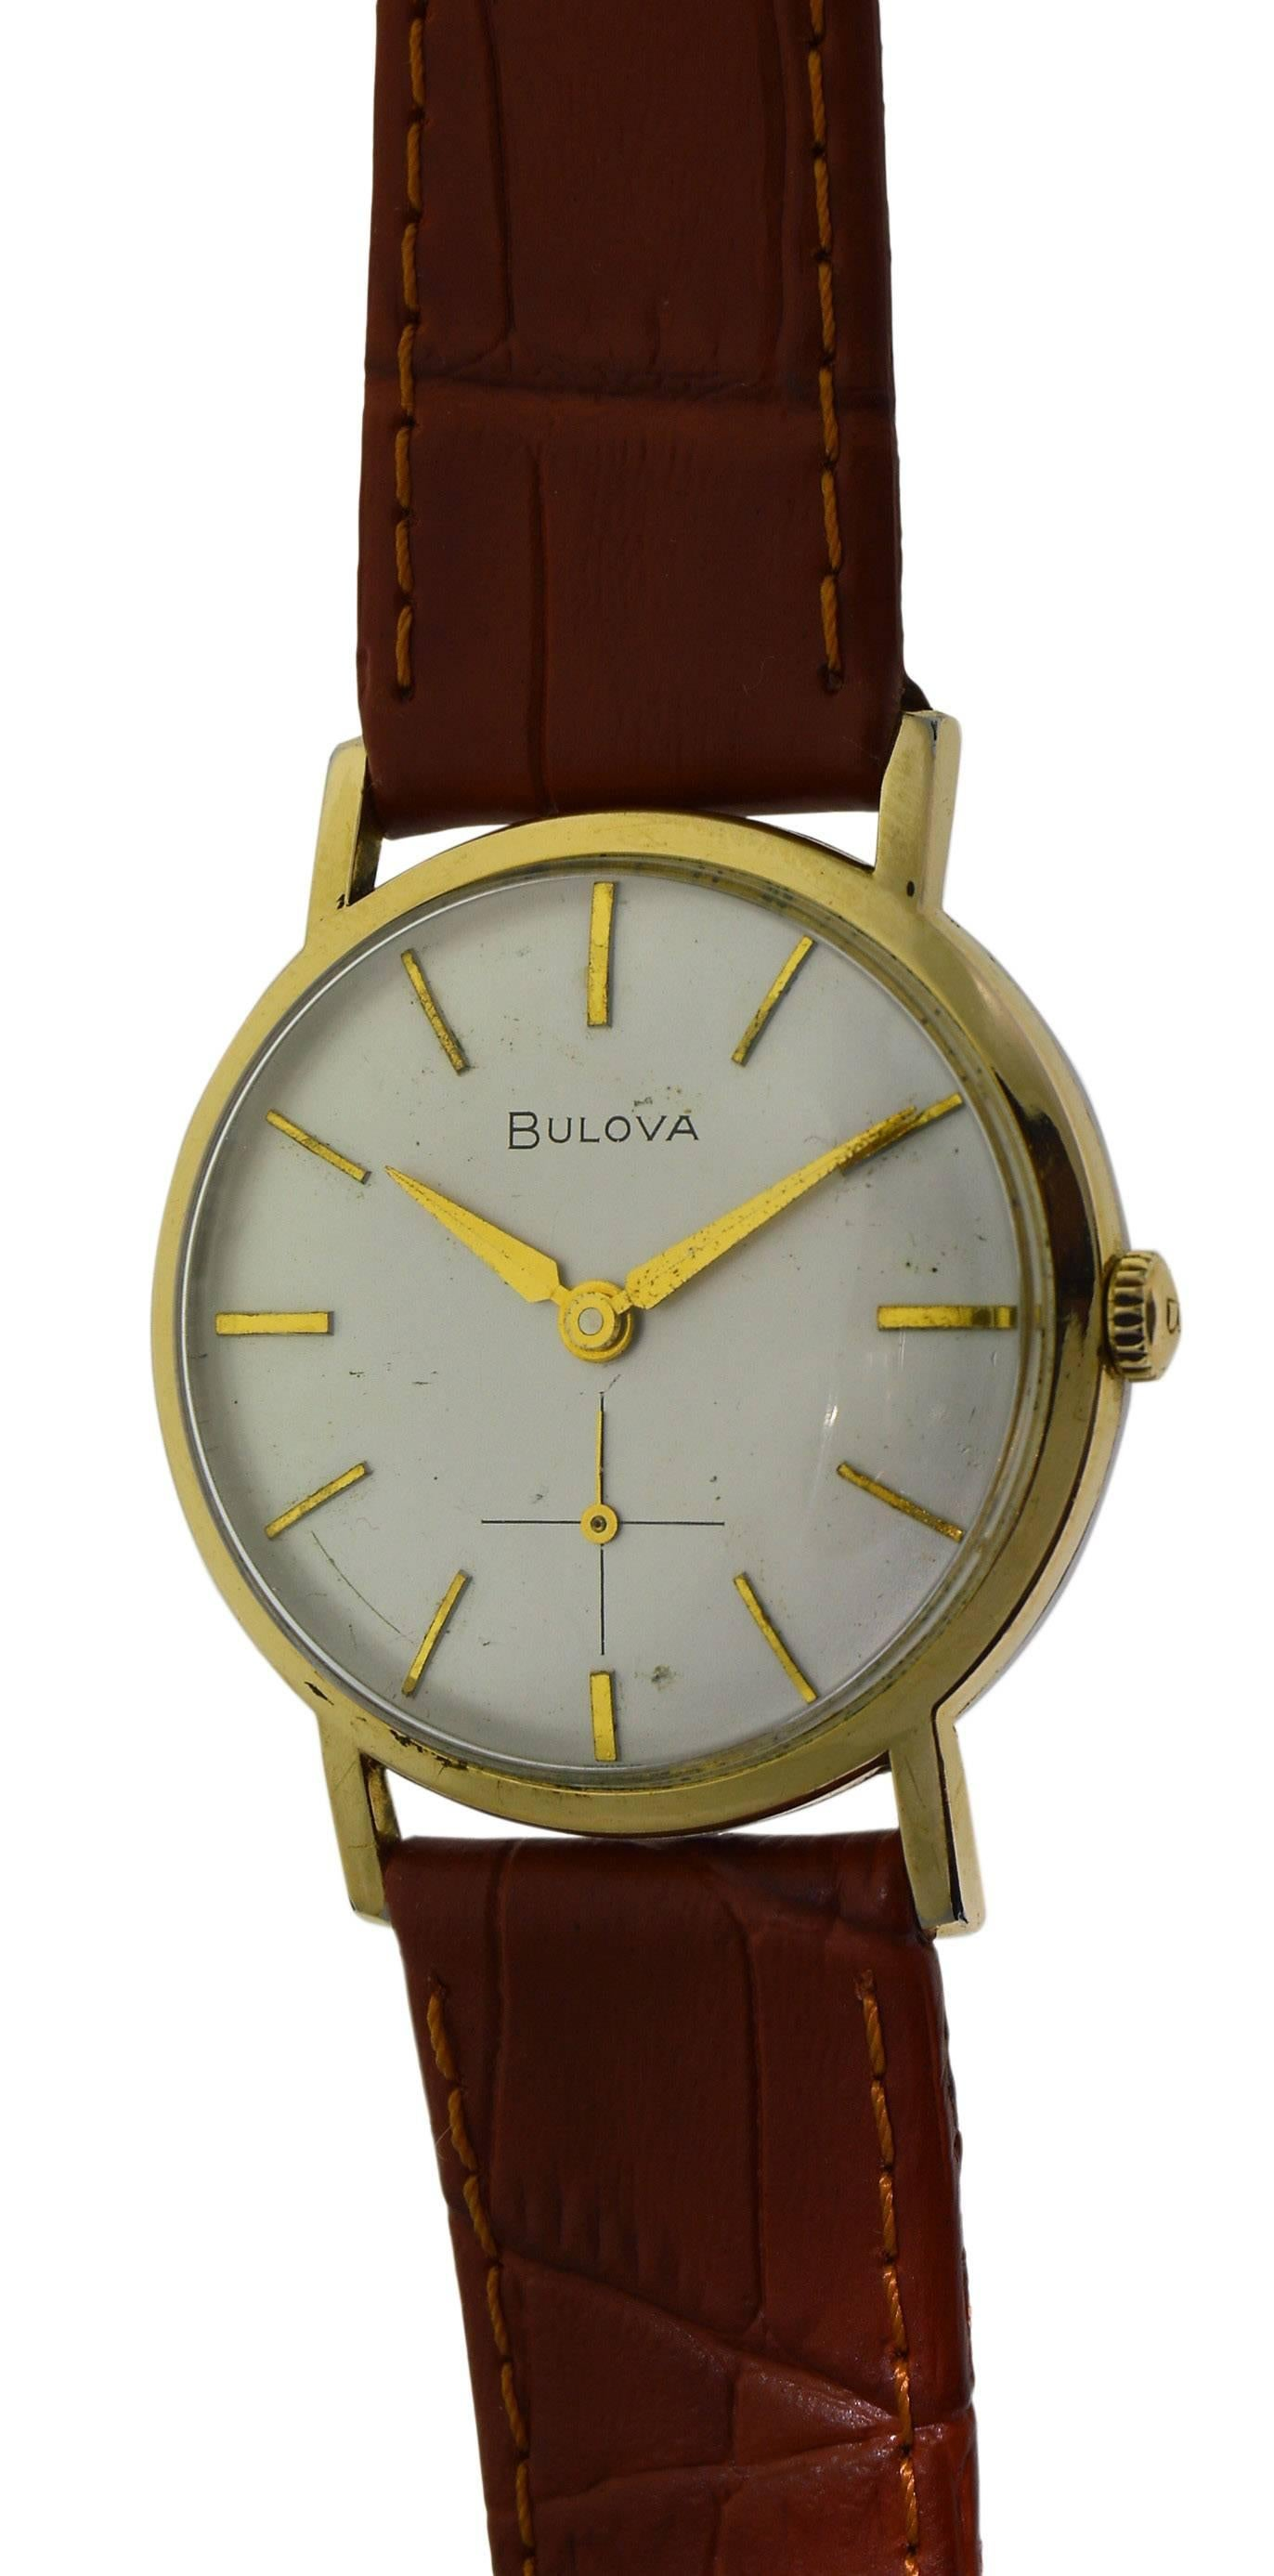 bulova yellow gold filled original dial round manual watch for sale rh 1stdibs com bulova chronograph watch manual bulova moon watch manual